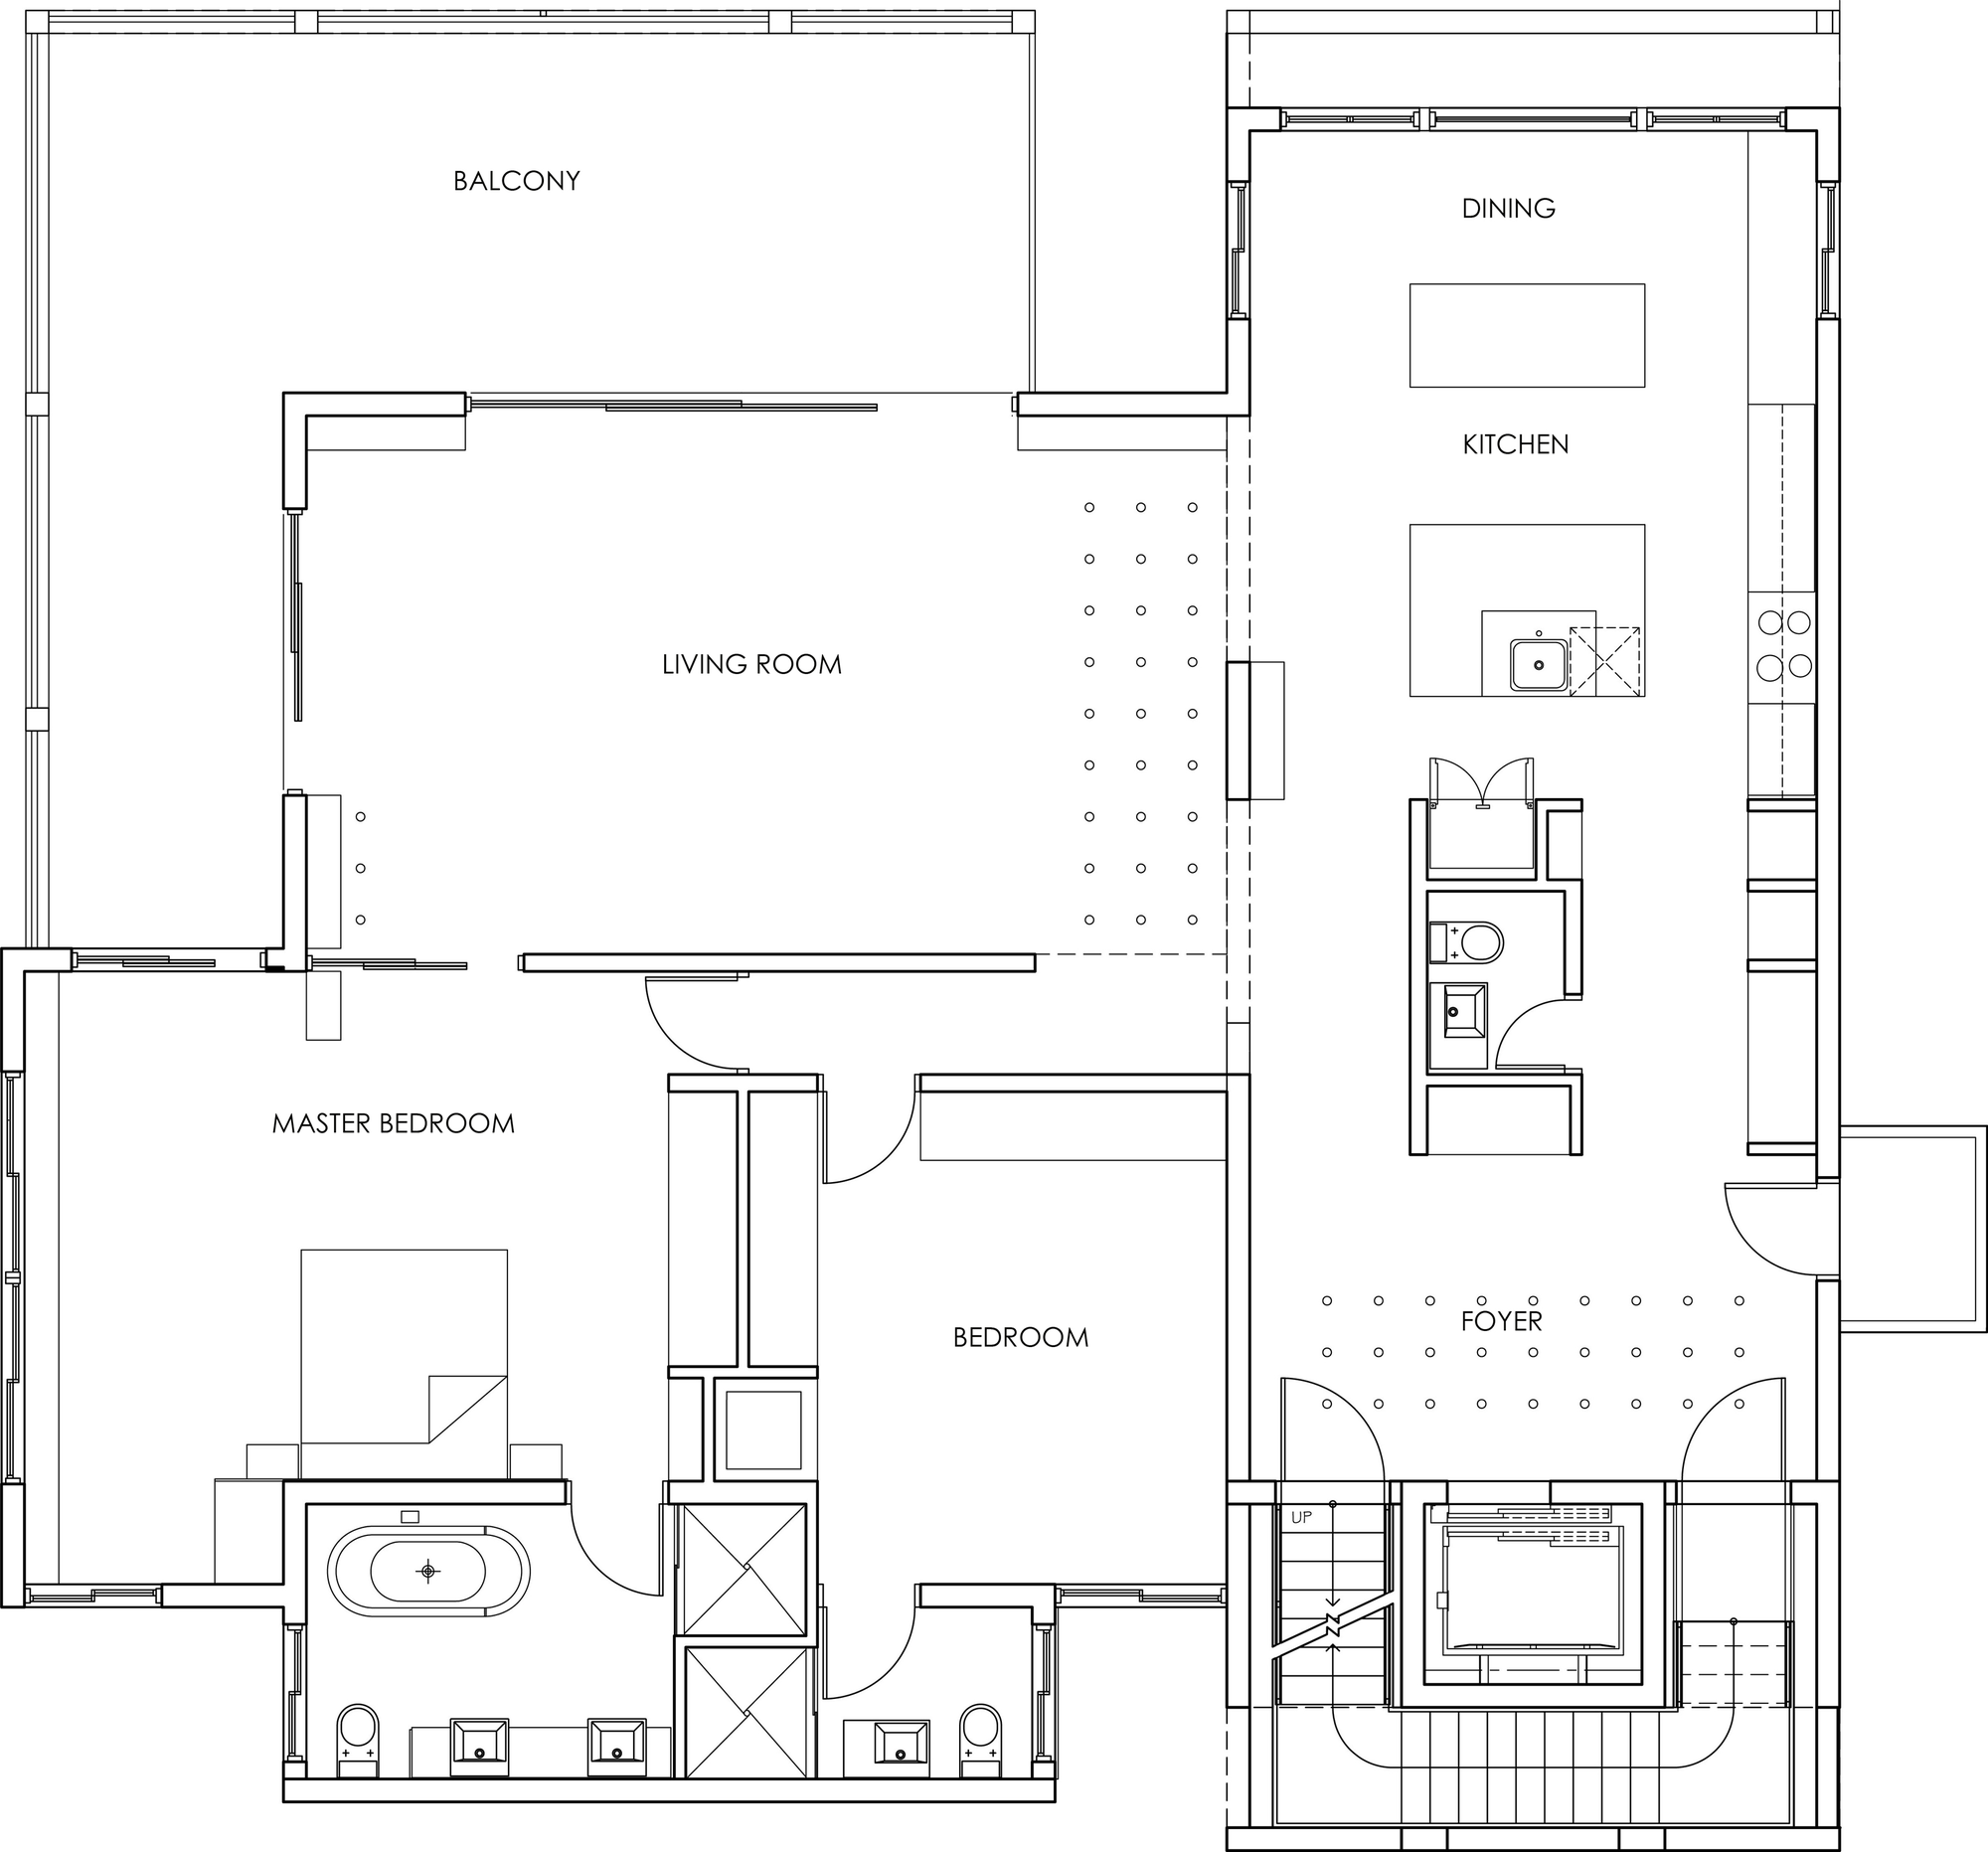 residencia-tavernier-drive-luis-pons-design-lab_101-house_renovation_-_tavernier_key_fl-_second_floor_plan